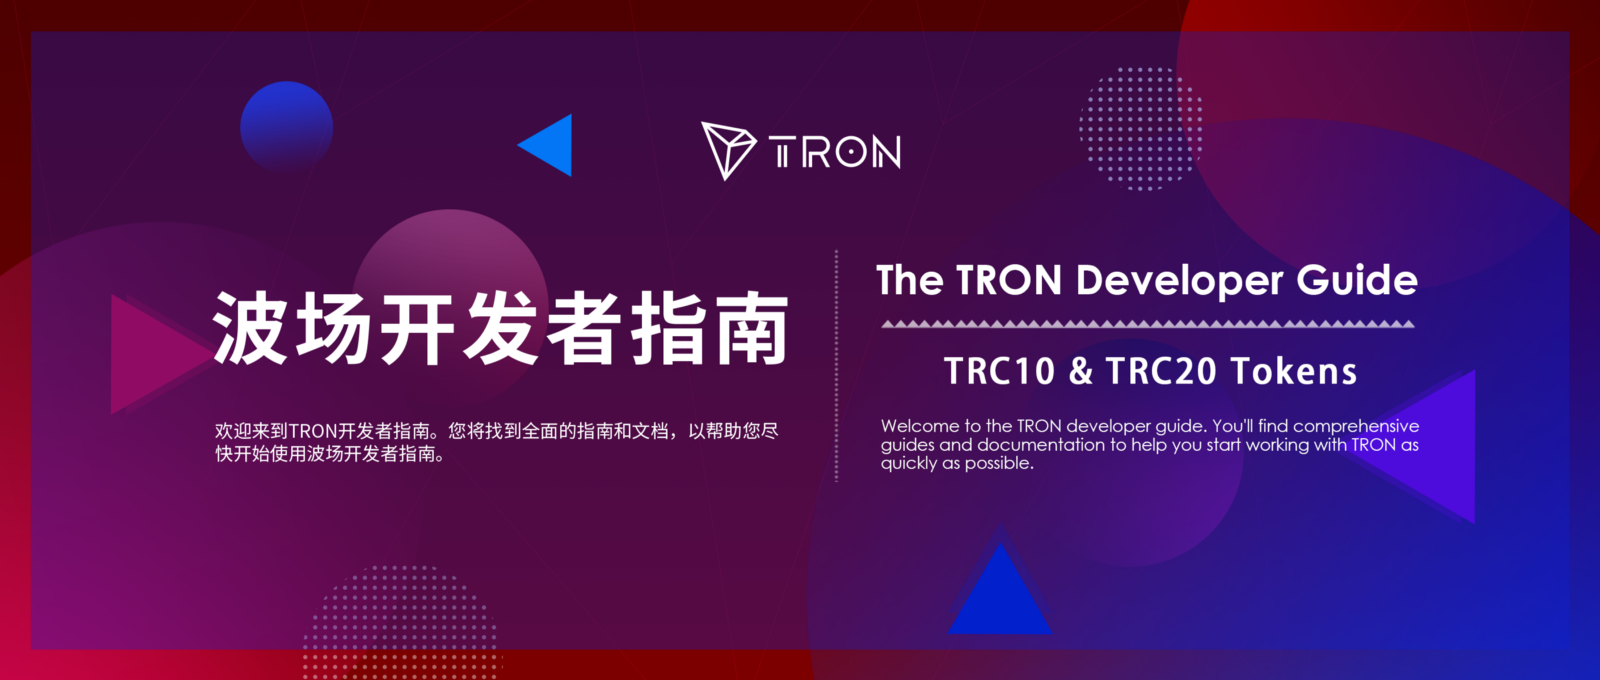 TRON Developer Guide — TRC10 & TRC20 Tokens